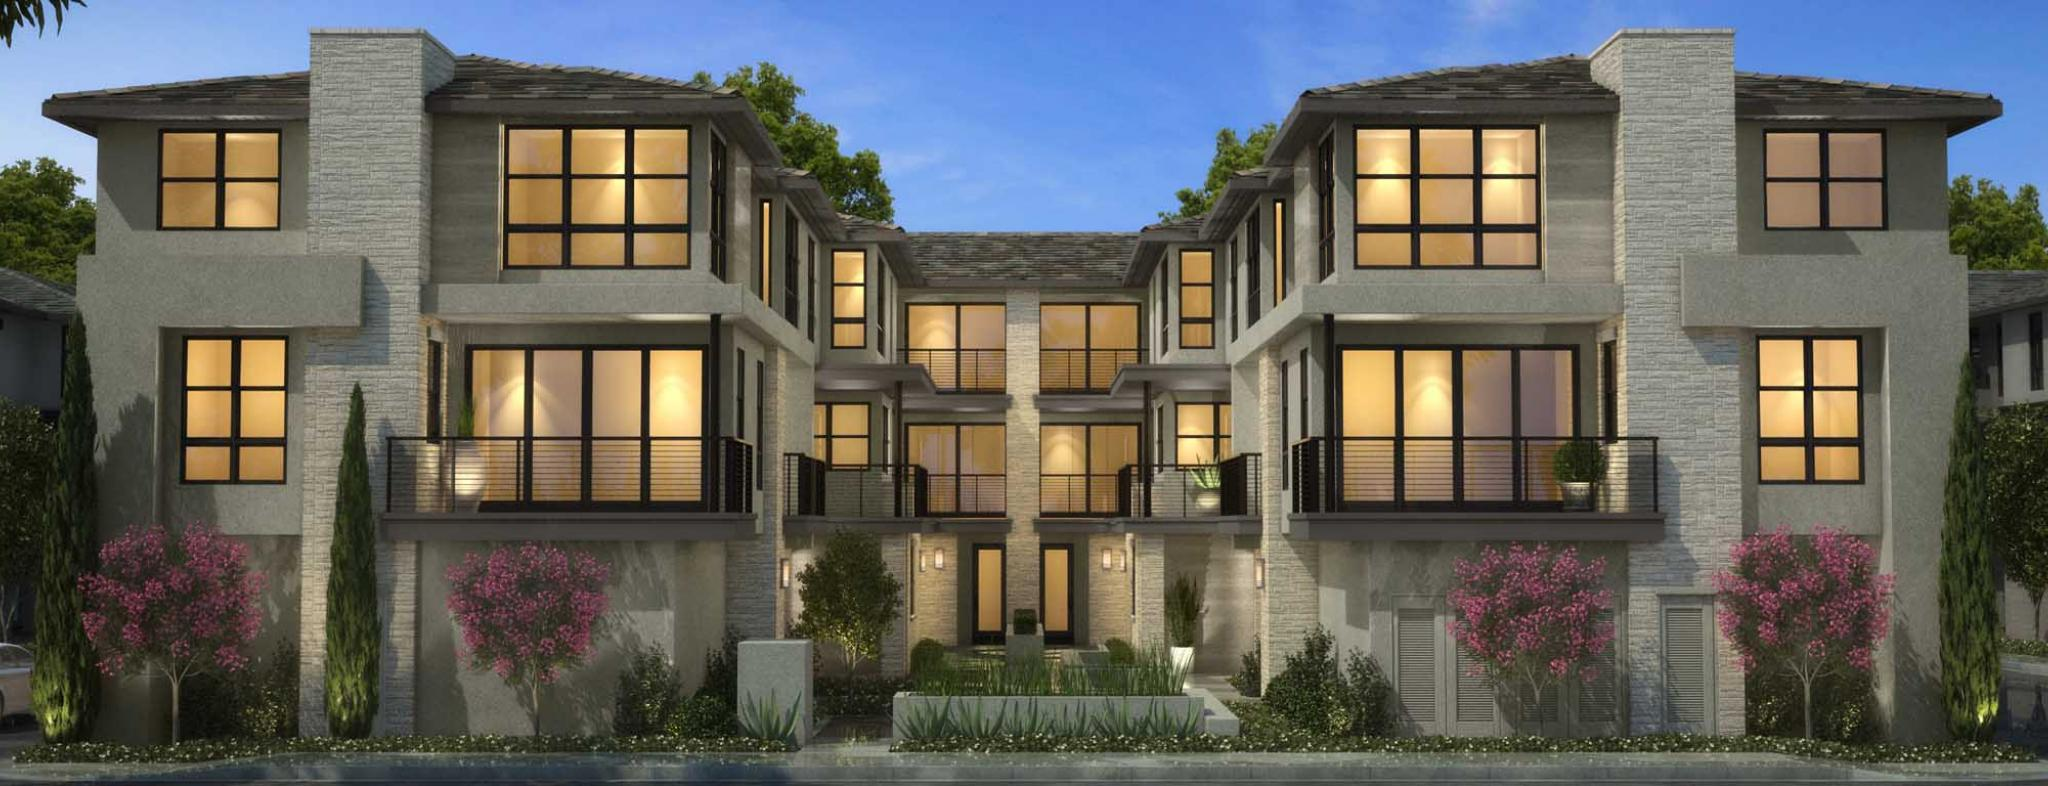 The New Home Company Announces Model Home Grand Opening for First Community in San Diego